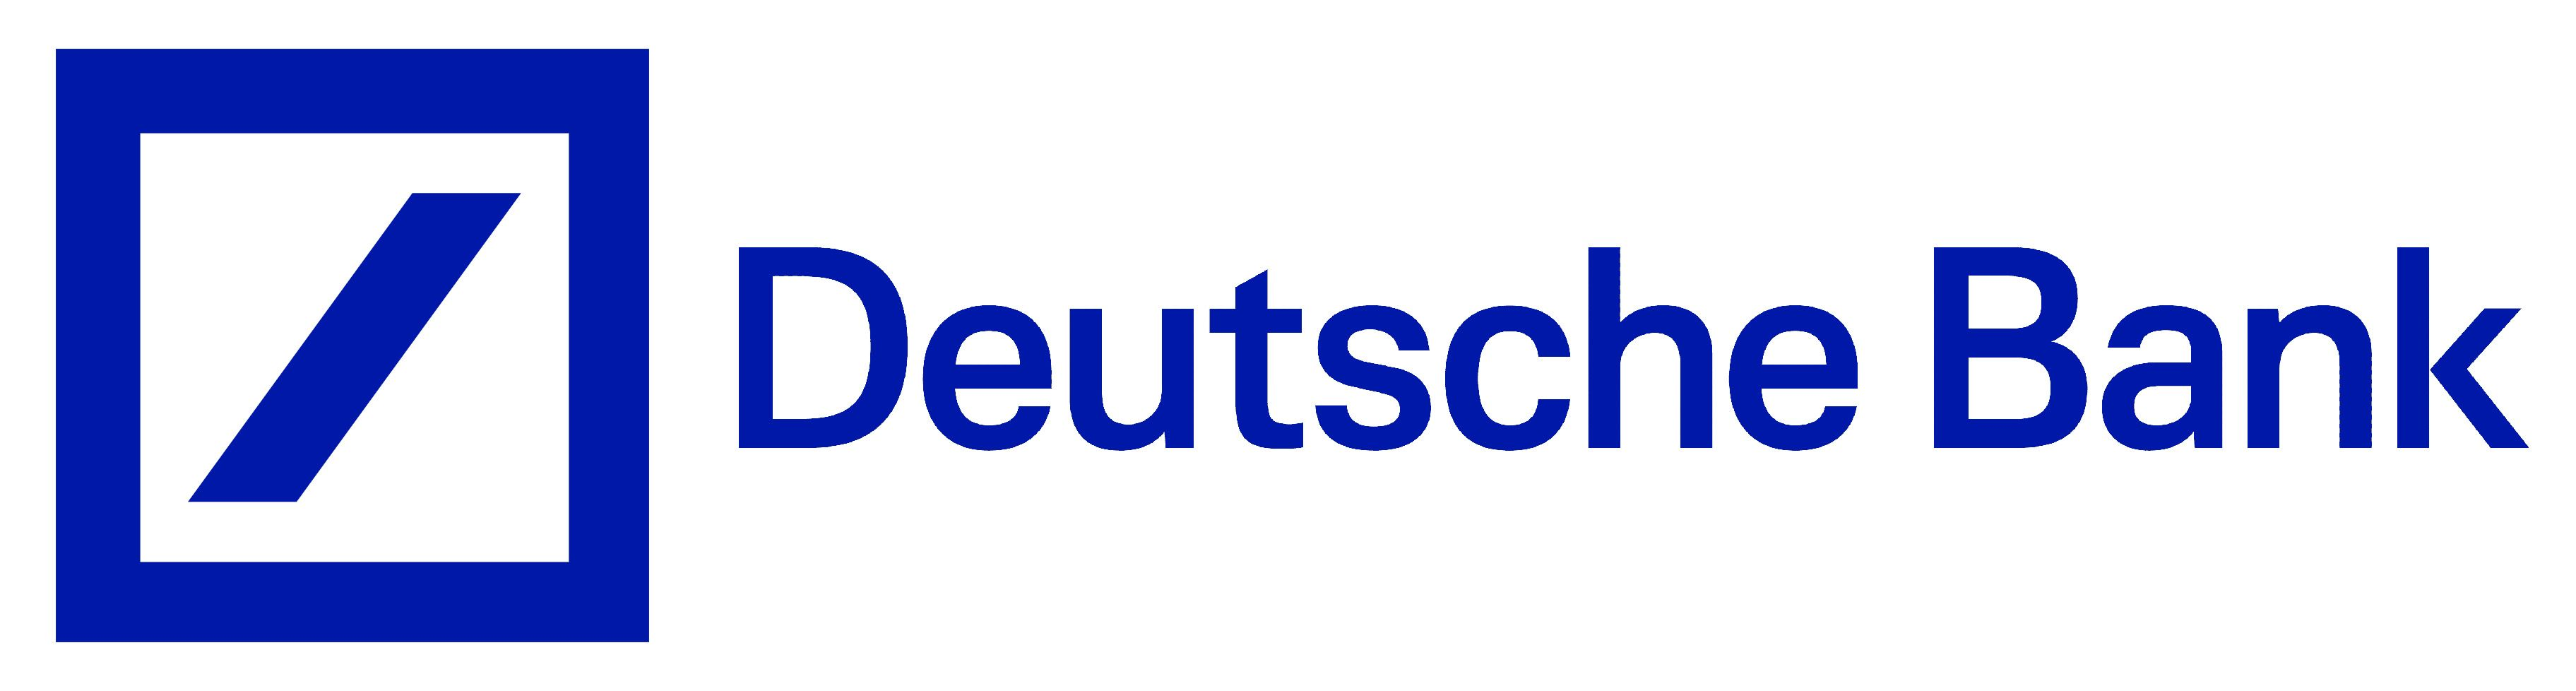 Deutsche Bank AG is a German investment bank and financial